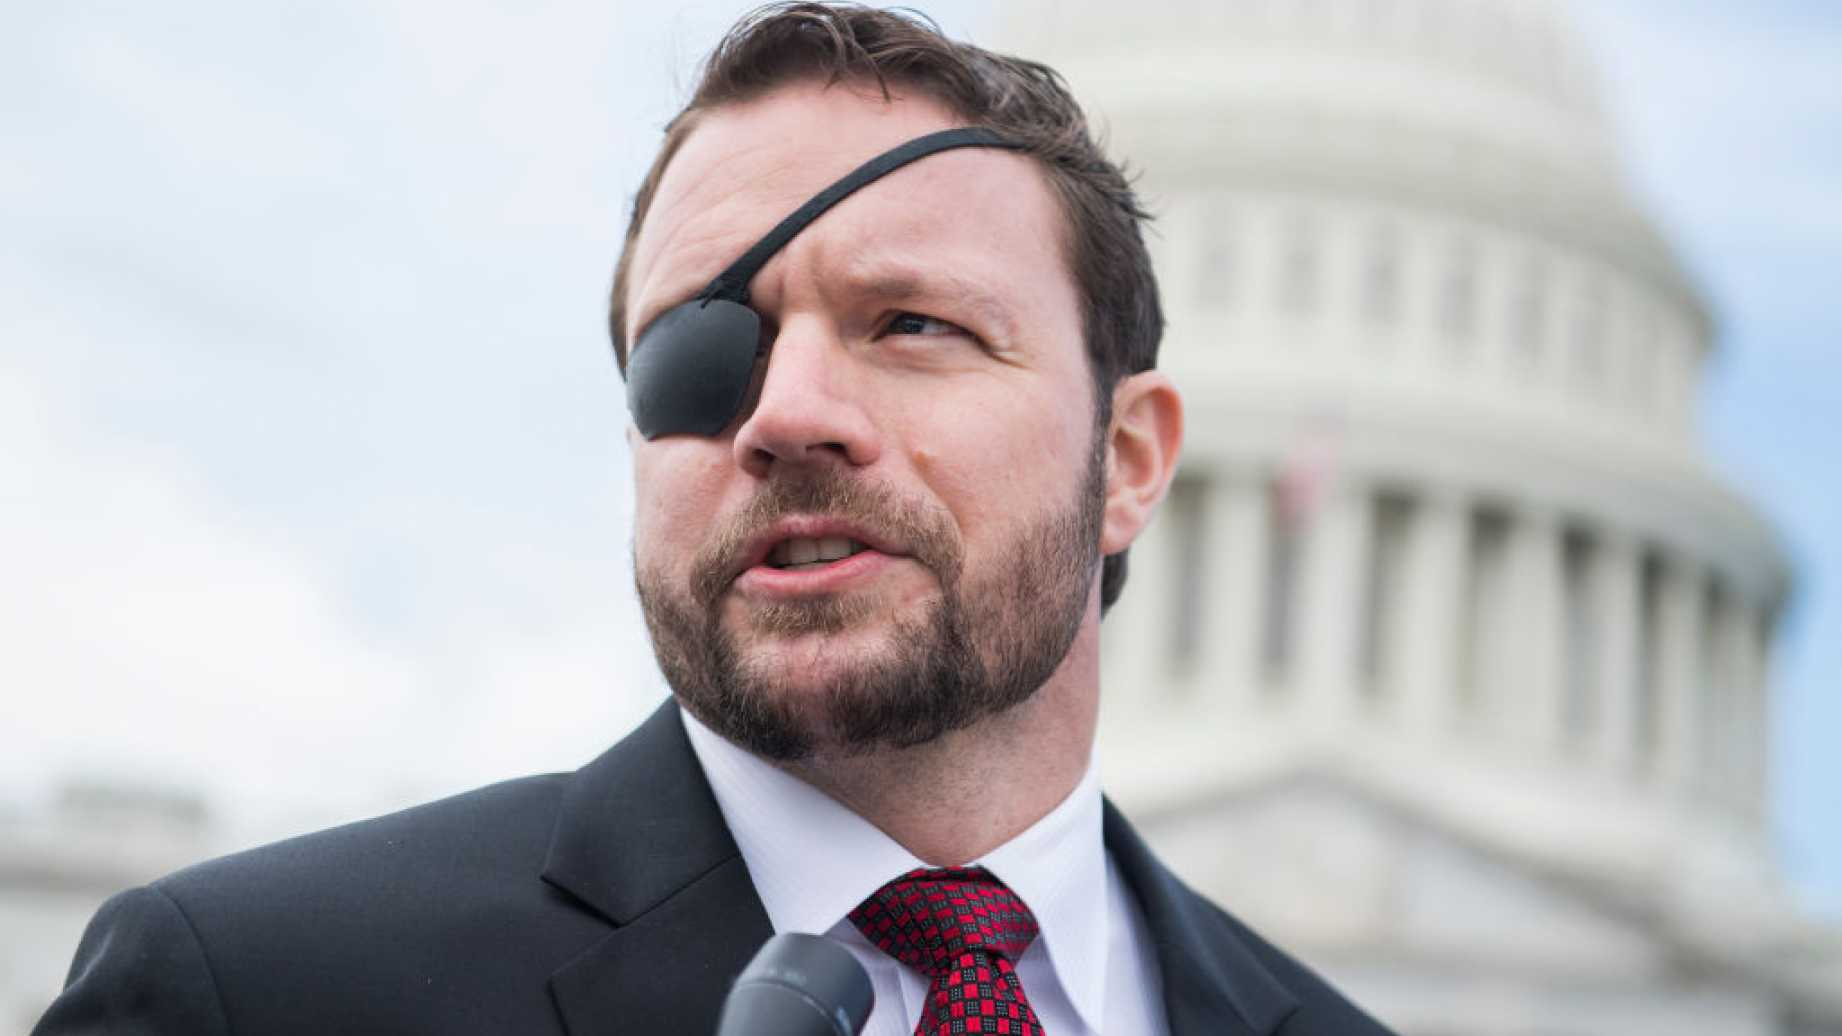 """Rep. Dan Crenshaw (R-TX) On Impeachment Inquiry: """"Trump has the ability to make everything seem out of the ordinary by the way he speaks but we do have to pay attention to the substance of what he's actually saying and the precedent that's already set."""""""